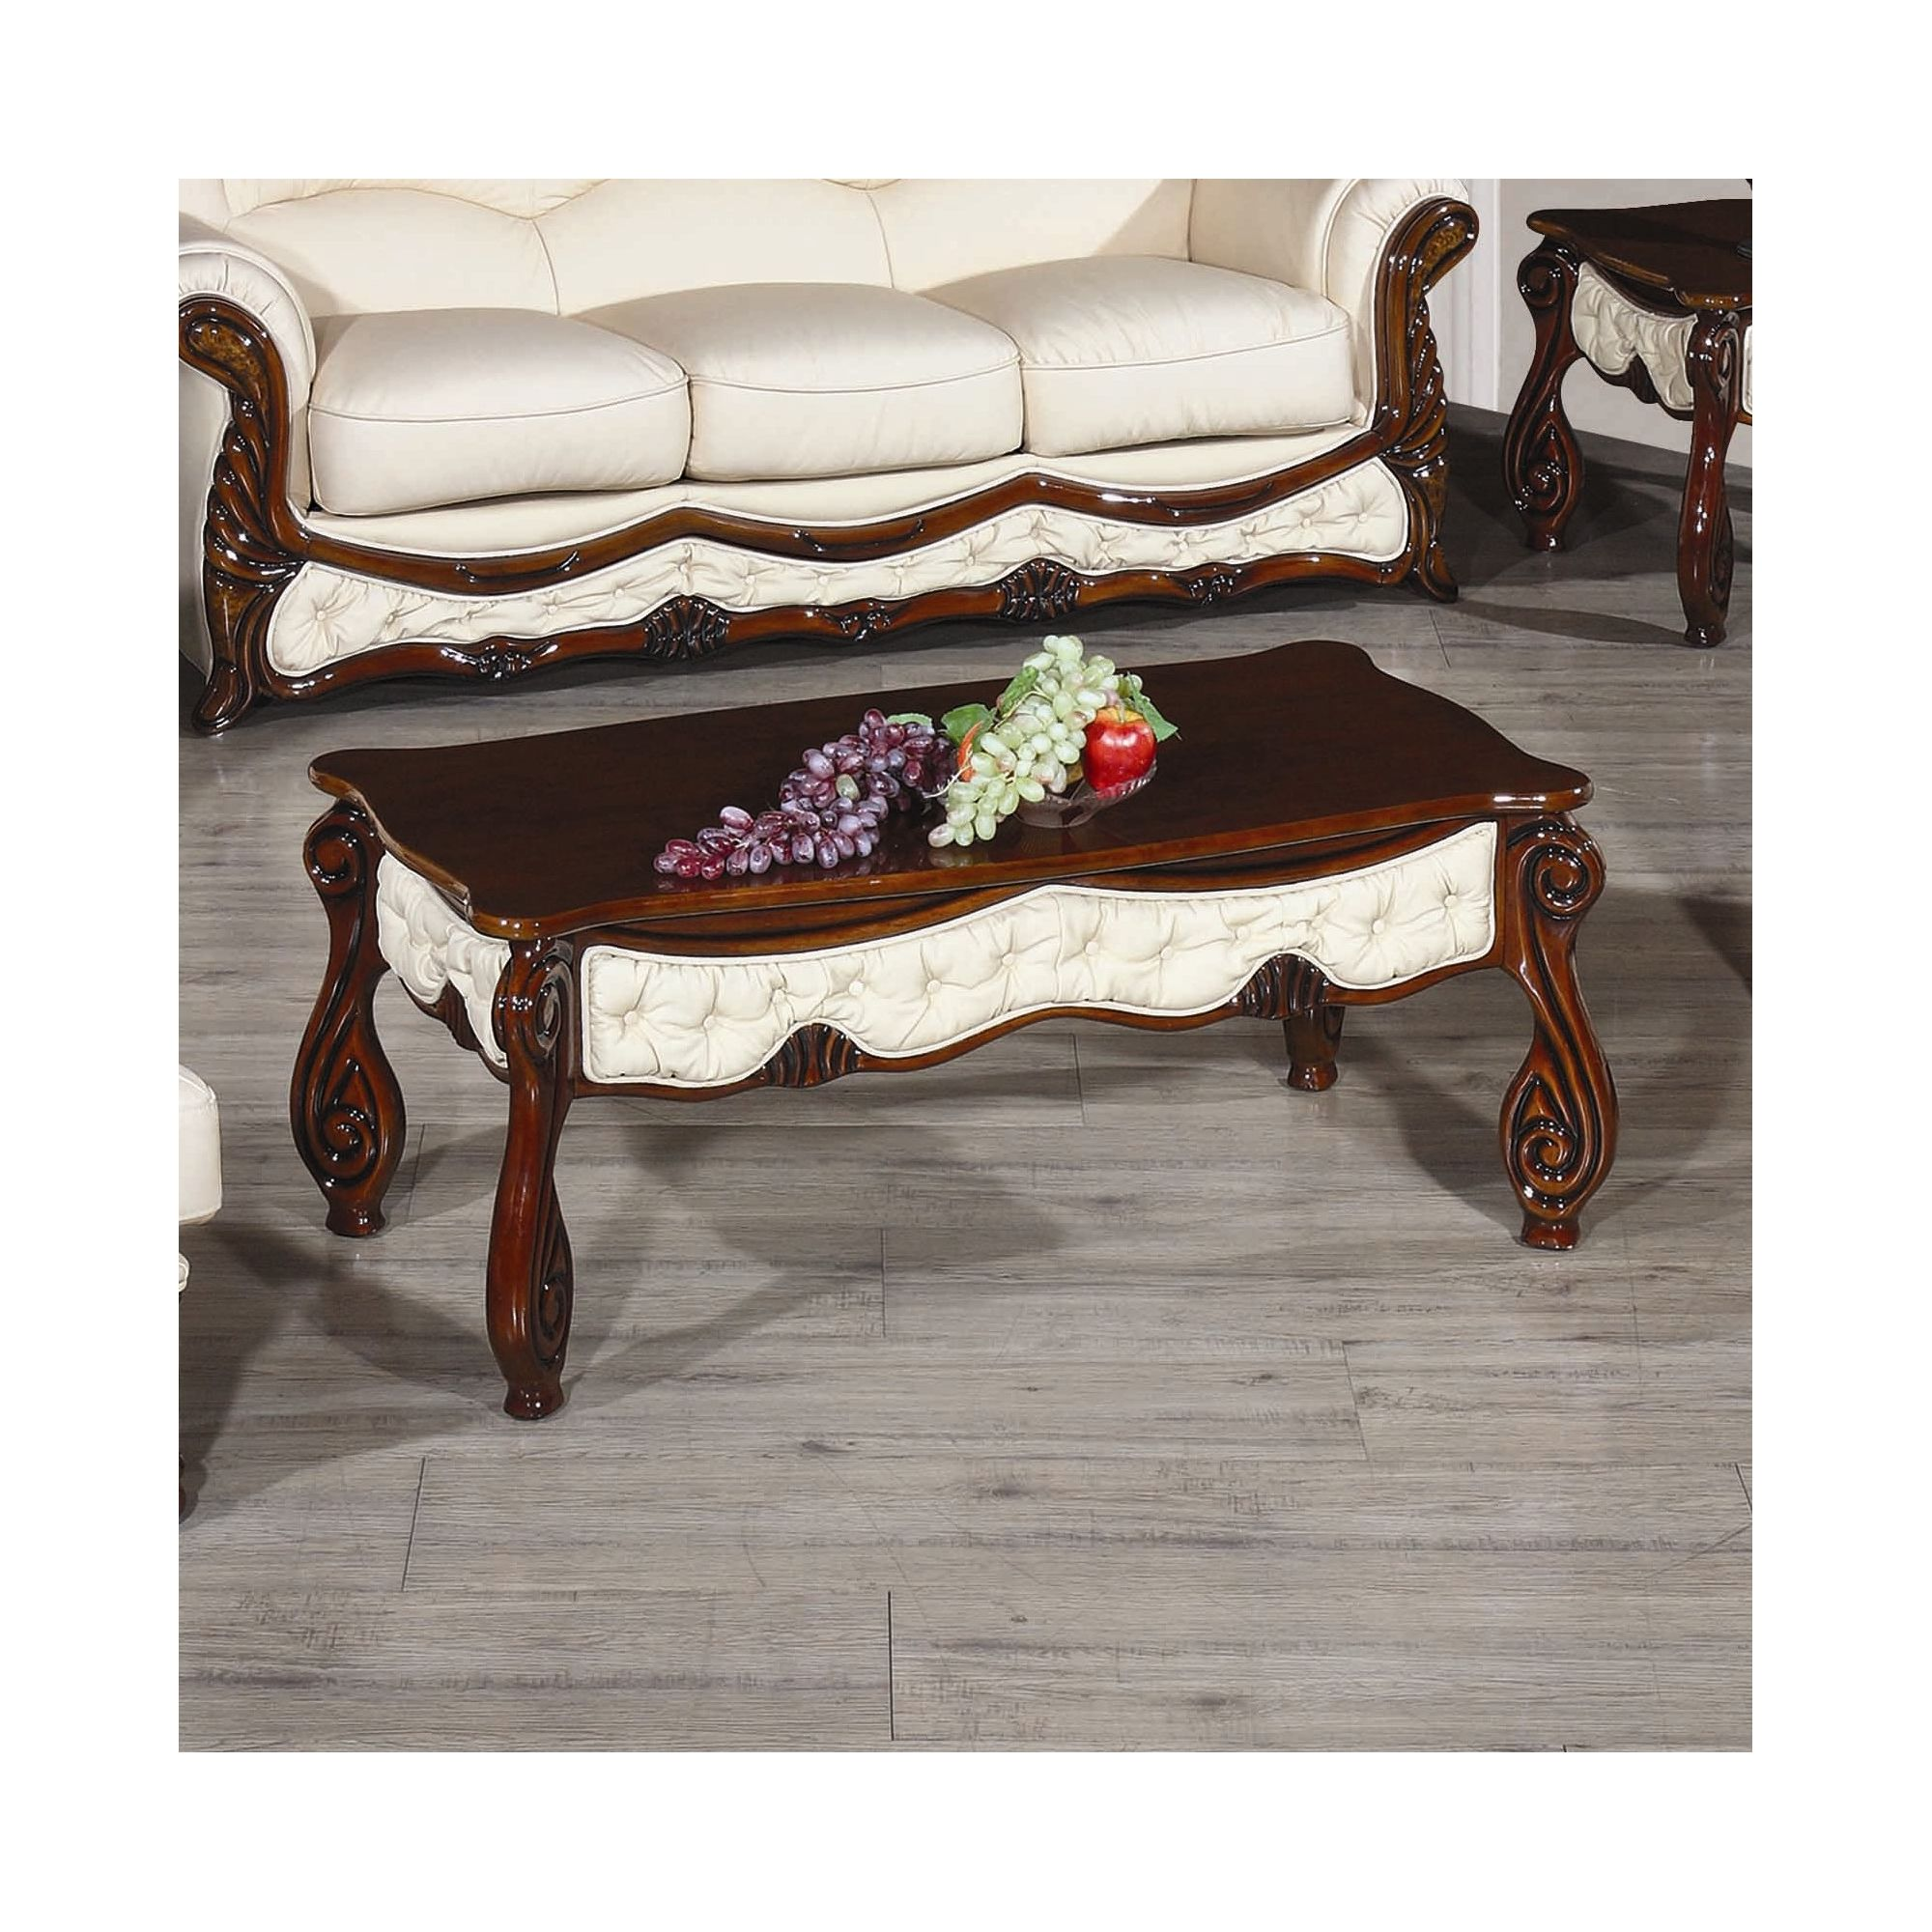 JPL Furniture Christina Coffee Table - Rose White at Tescos Direct